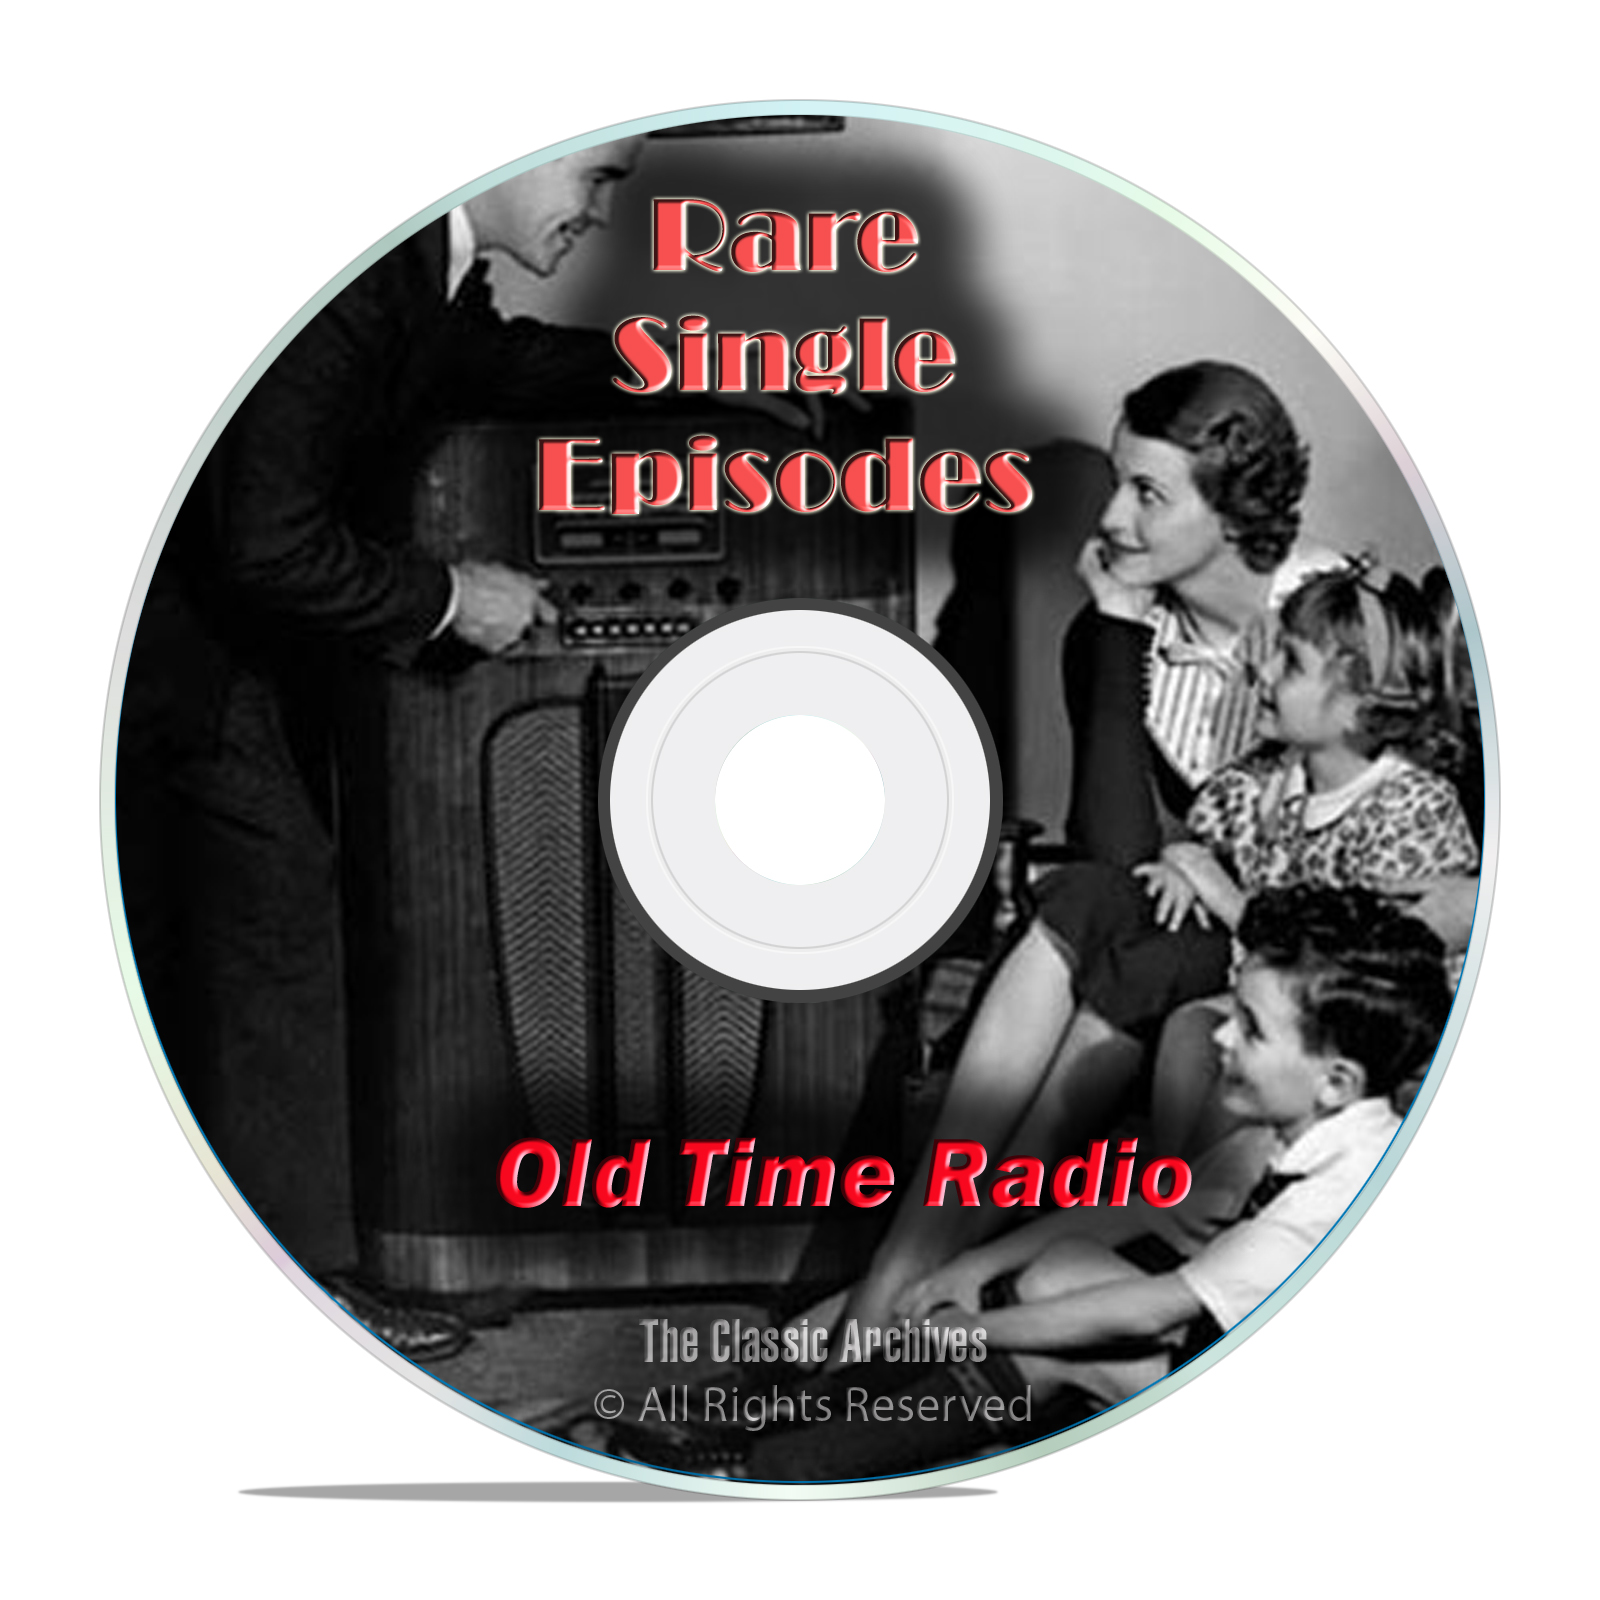 1,326 Old Time Radio, Rare Single Episodes, Old Lost Shows, mp3 2-DVD set